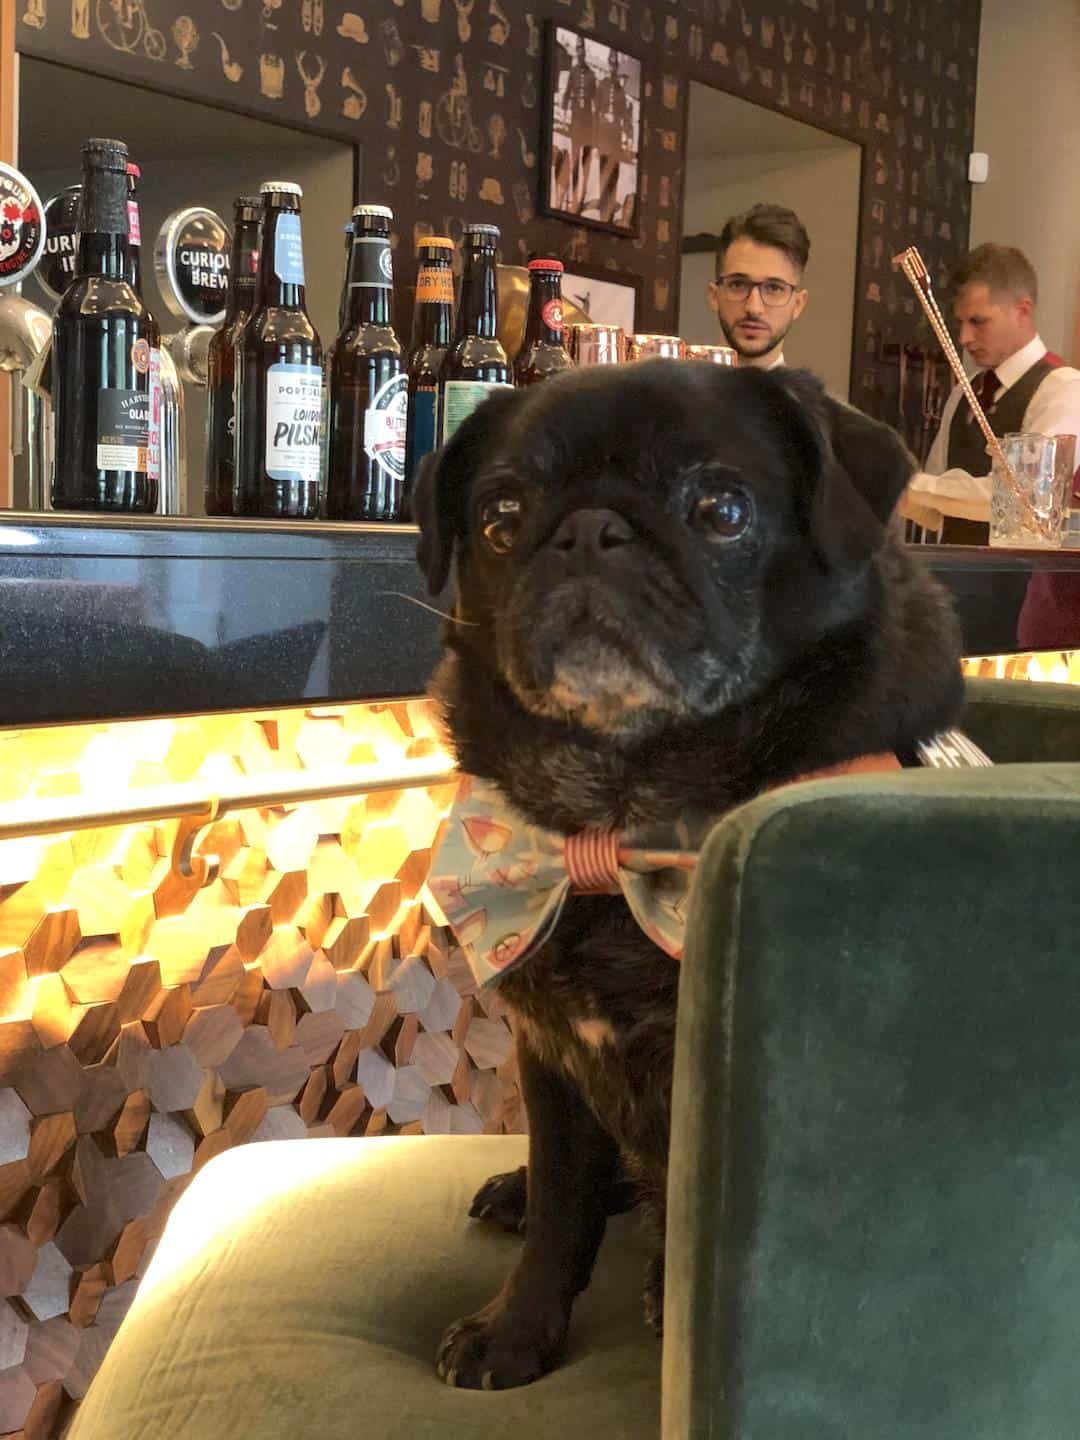 My Dog-friendly London Clapham & Battersea By Hemingway The Pug Smith & Whistle 1